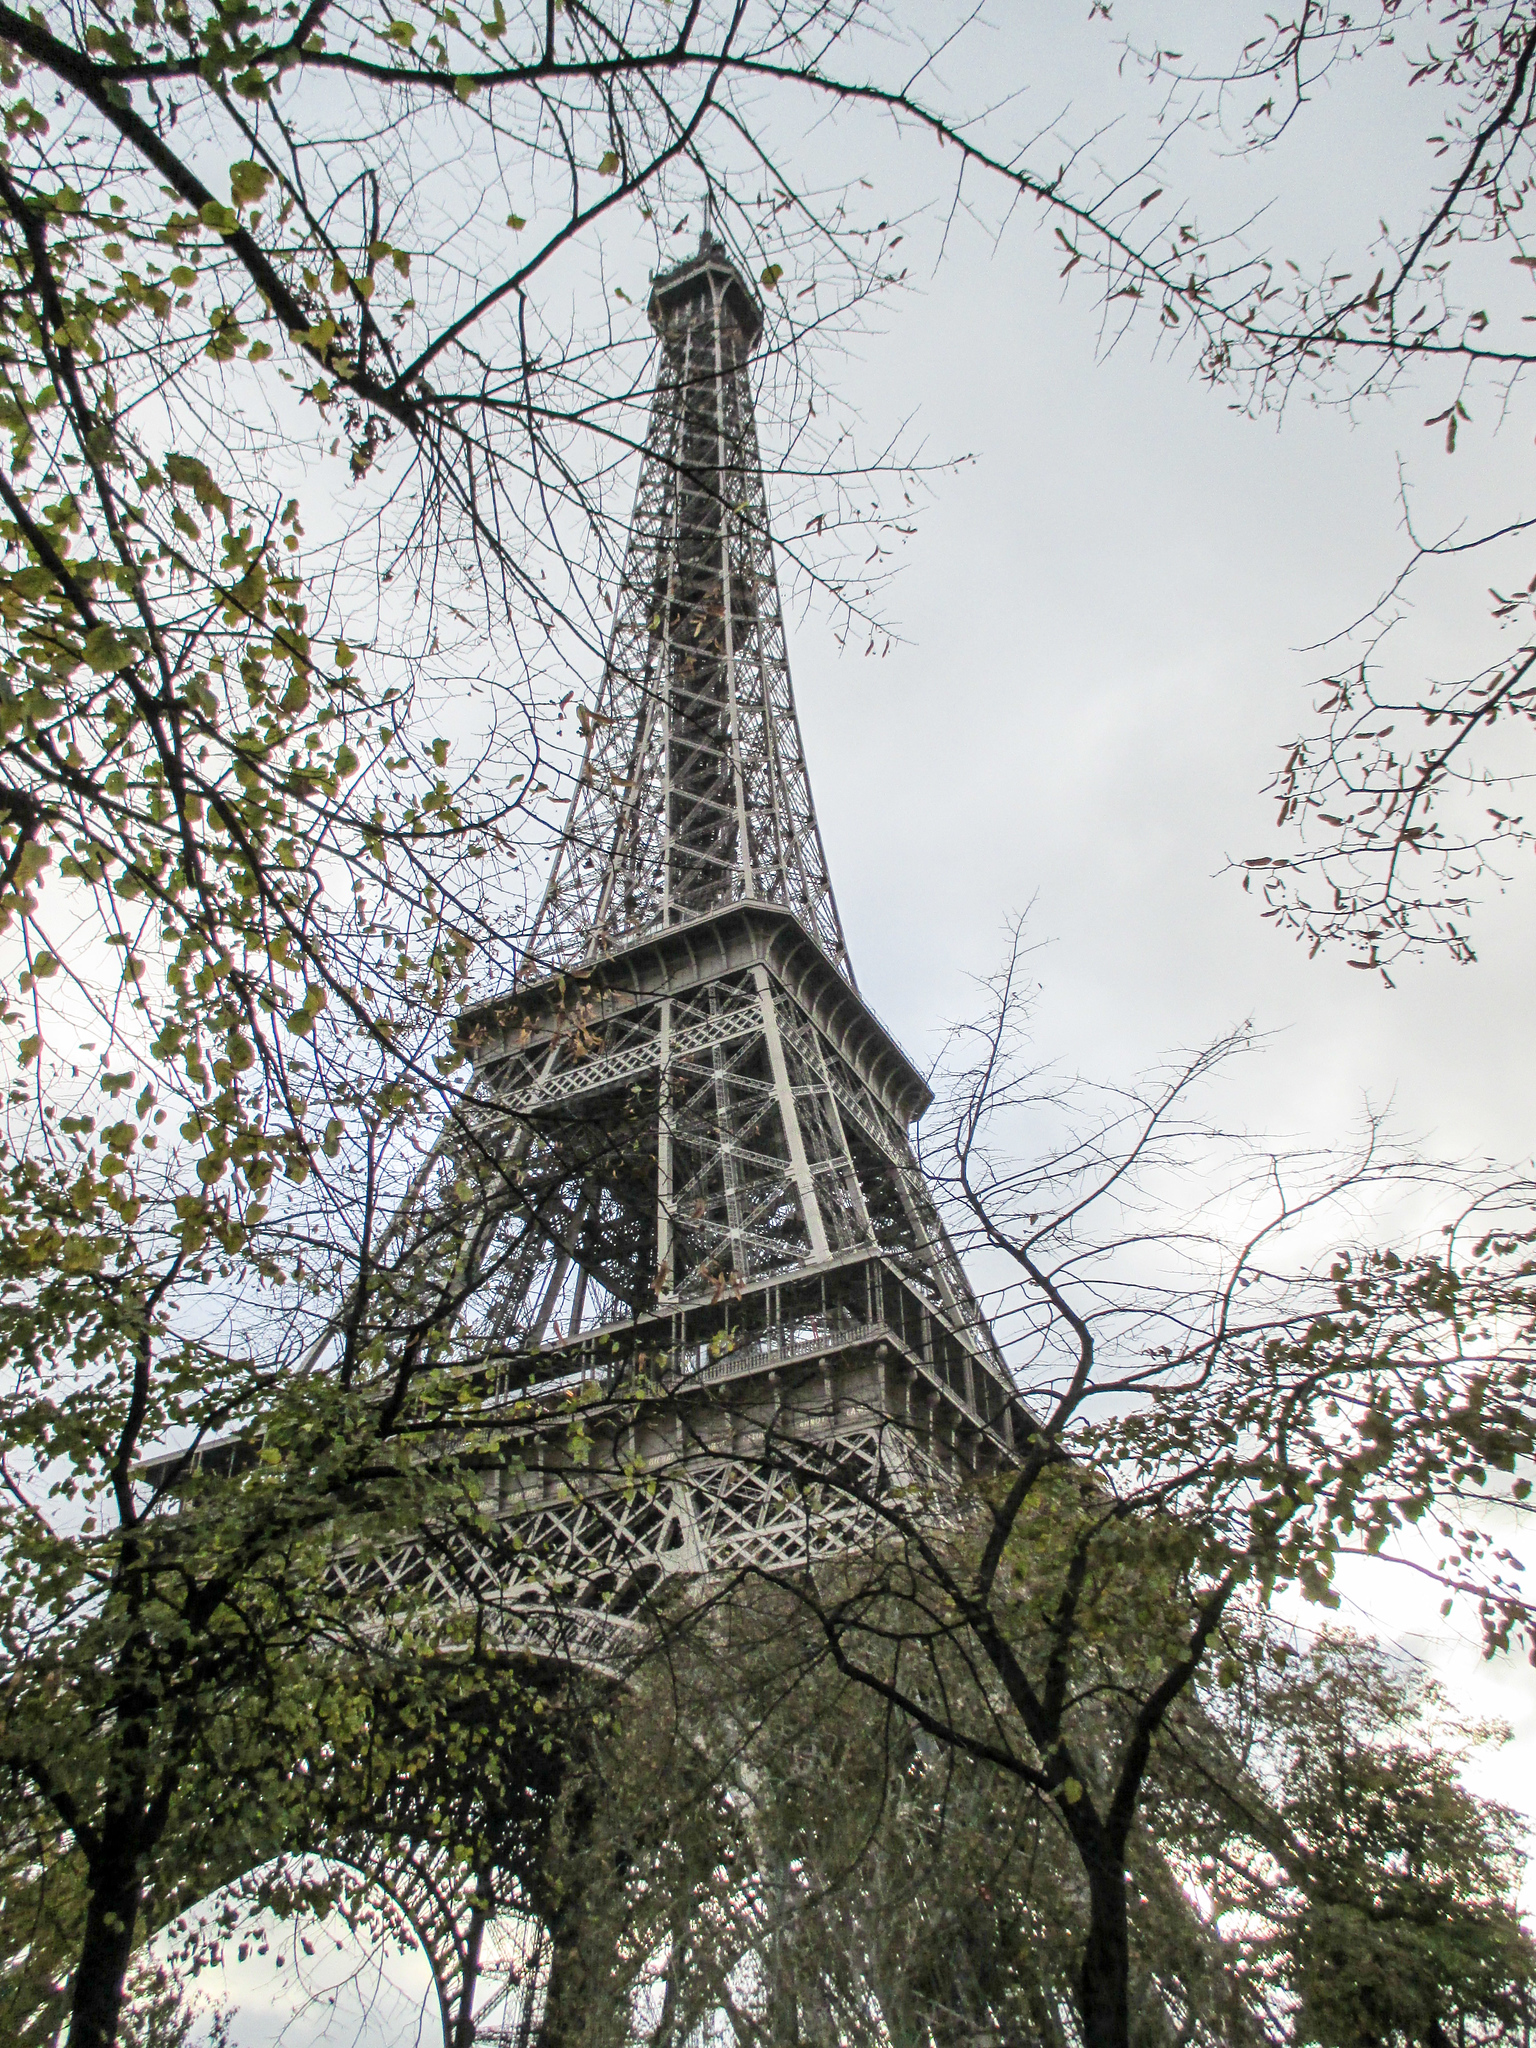 paris in 2 days means seeing the eiffel tower